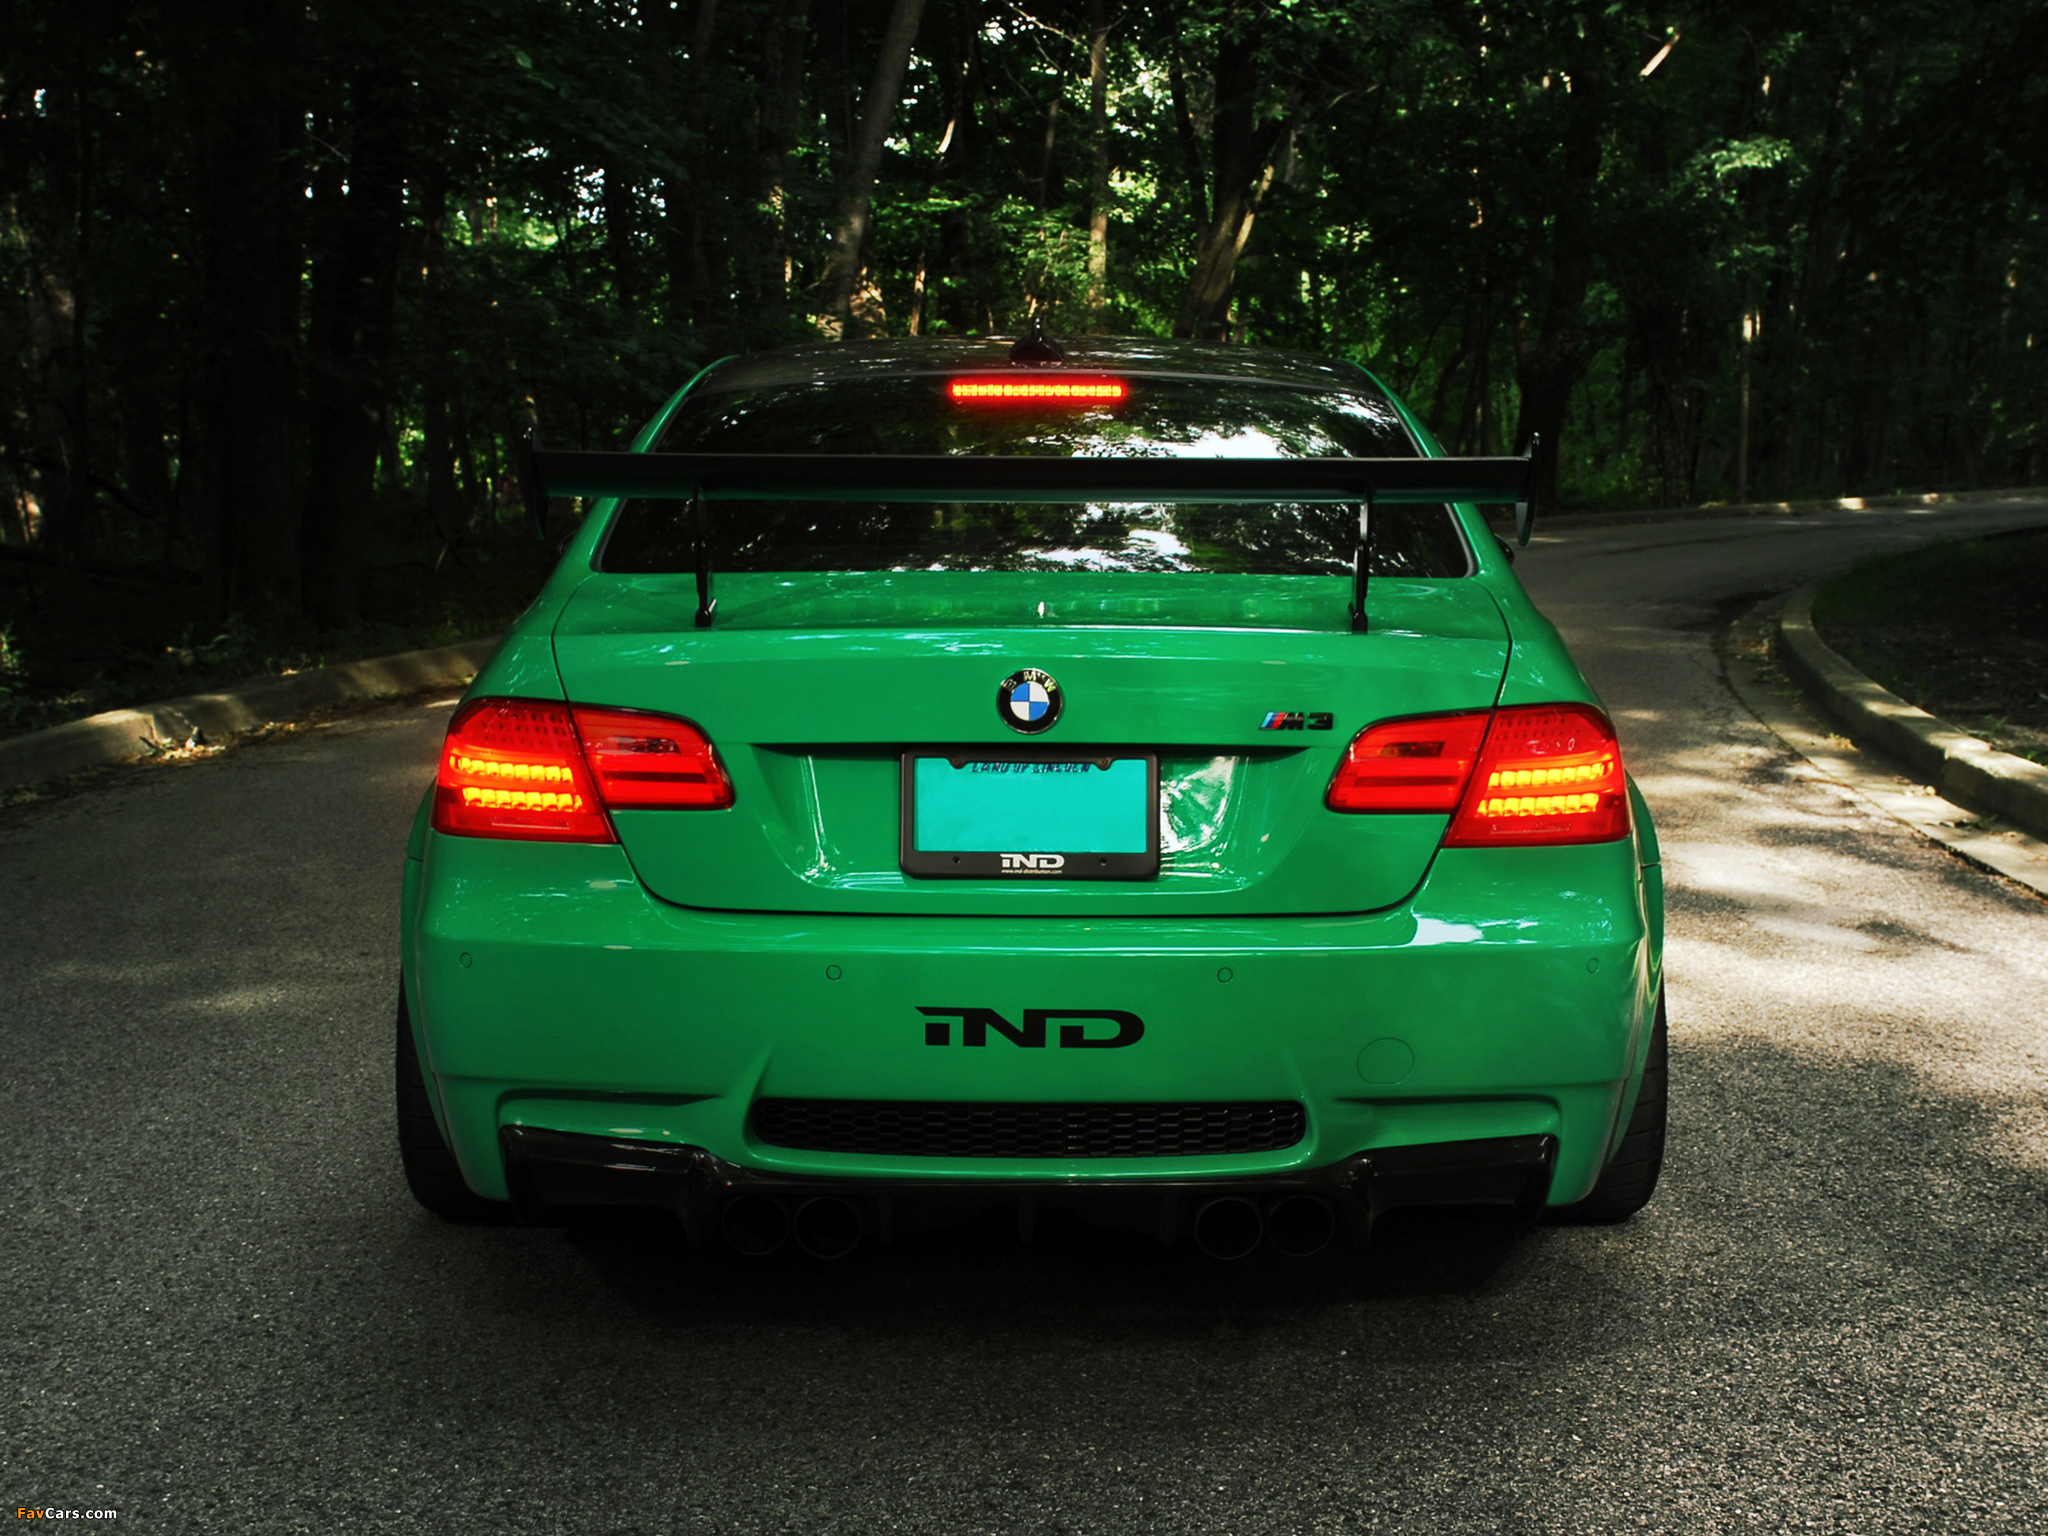 bmw m3 coupe green - photo #19